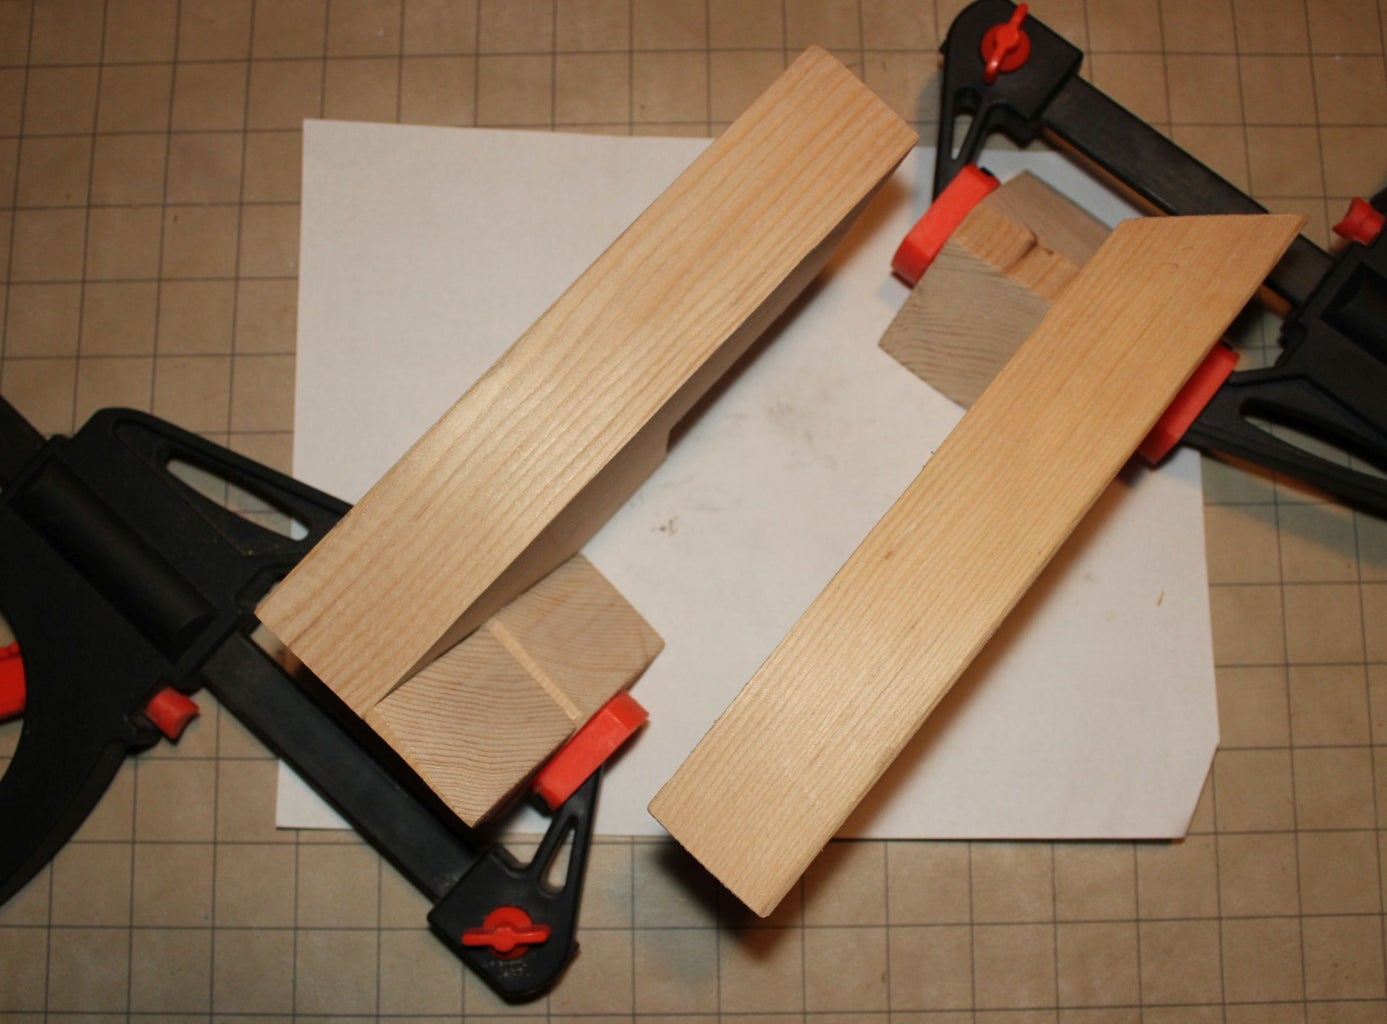 Assembling the Top and Bottoms Sections